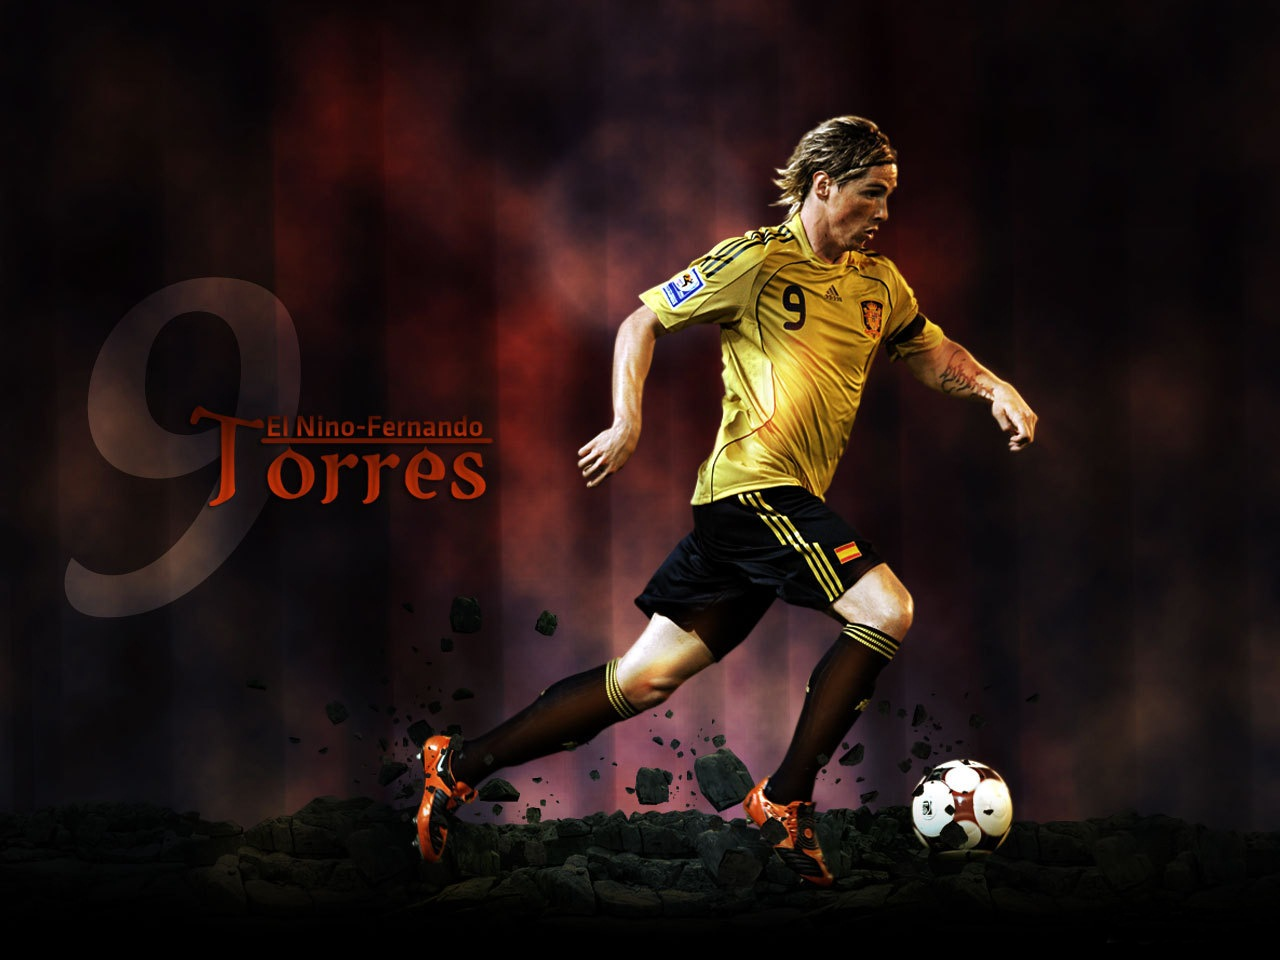 Fernando Torres Latest Hd Wallpapers 2013 All About Hd